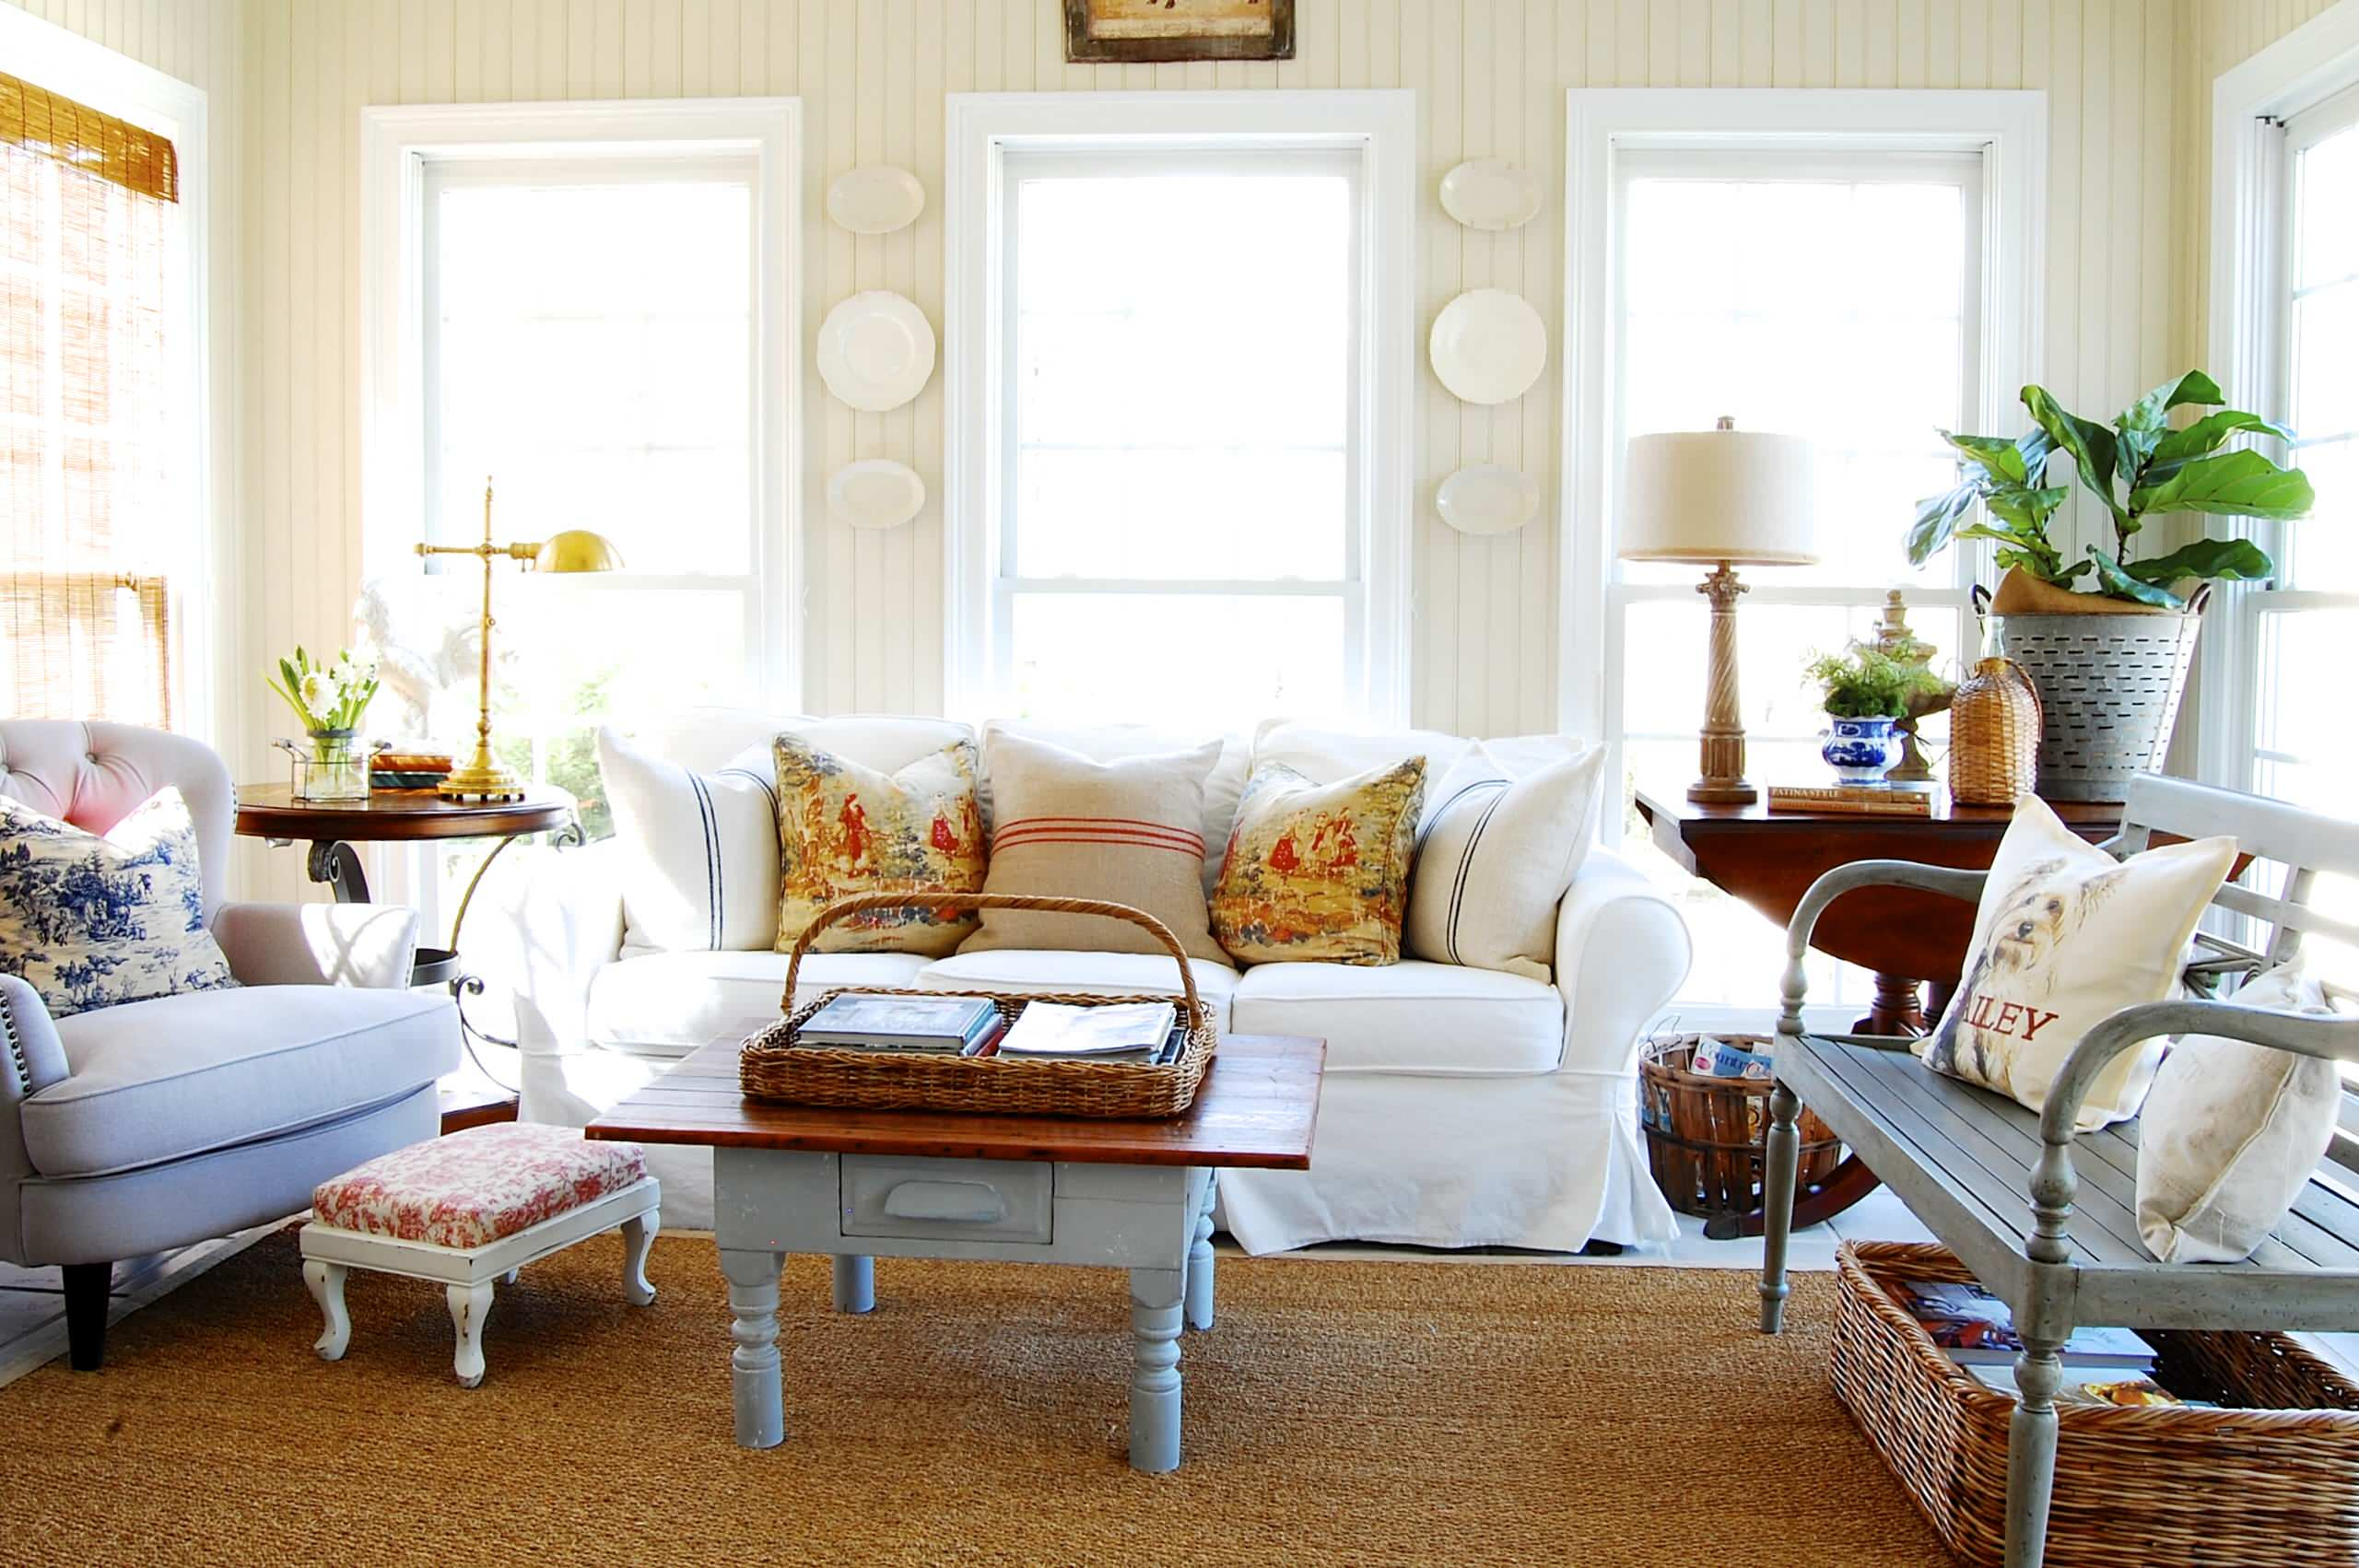 75 Beautiful French Country Family Room Pictures Ideas December 2020 Houzz